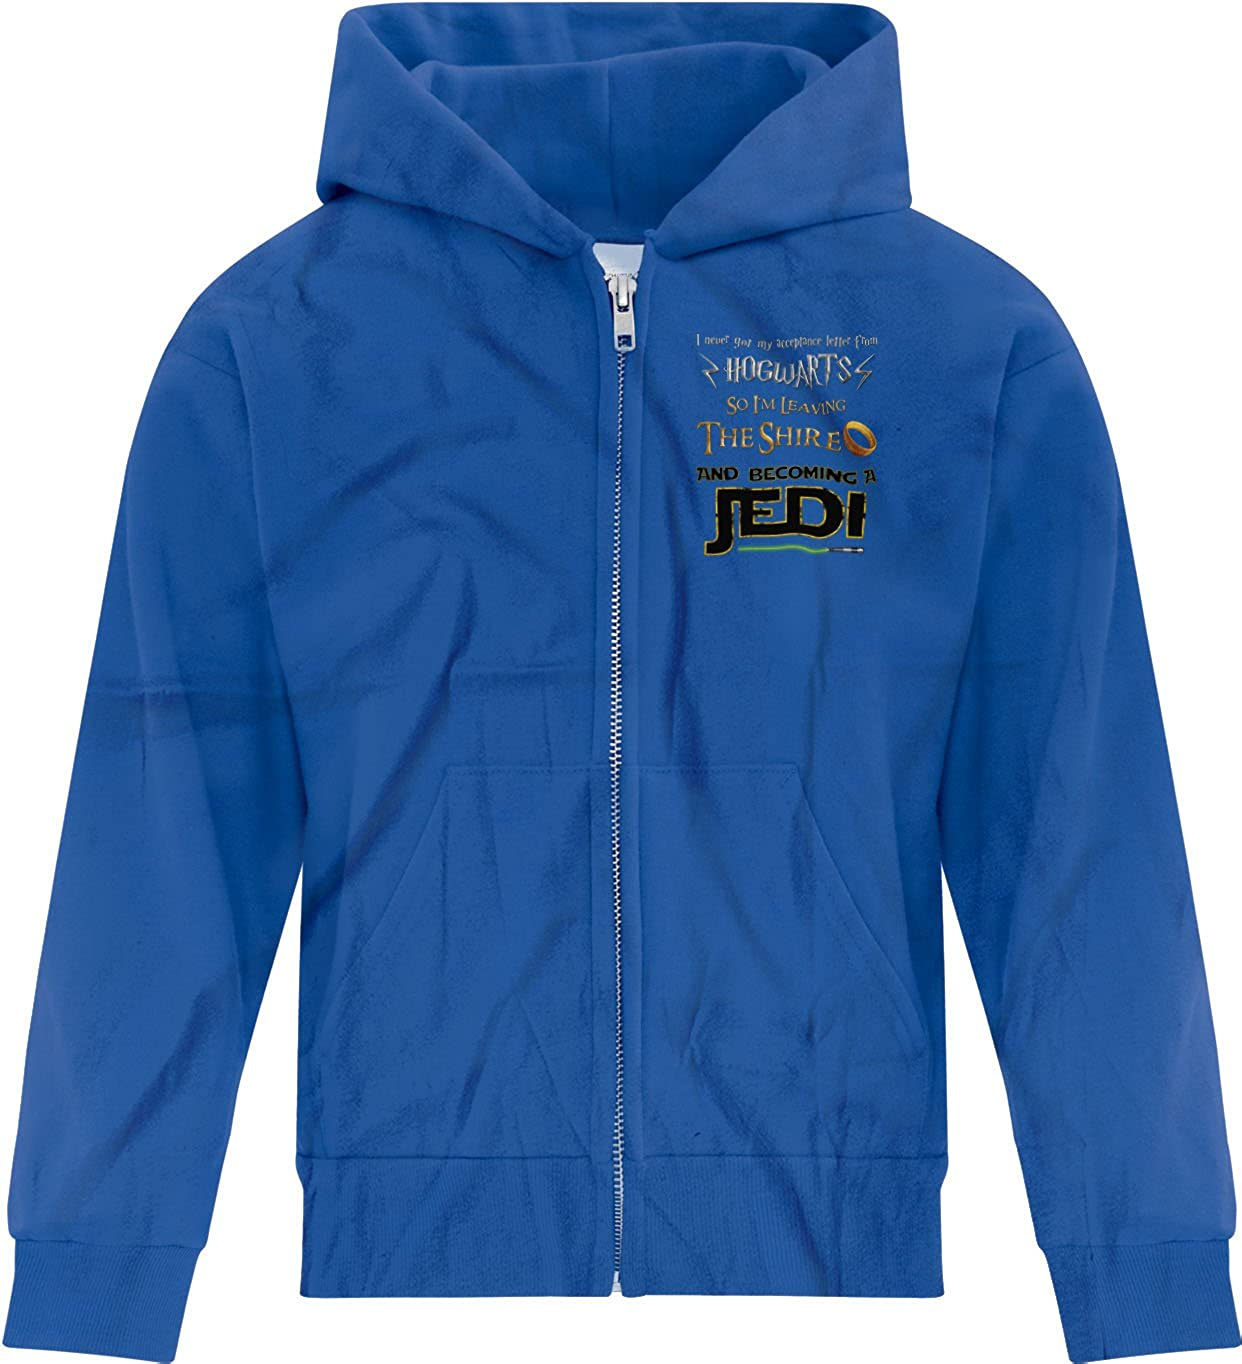 BSW Boys Harry Potter Lord of The Rings Star Wars Jedi Zip Hoodie XL Drk HTHR